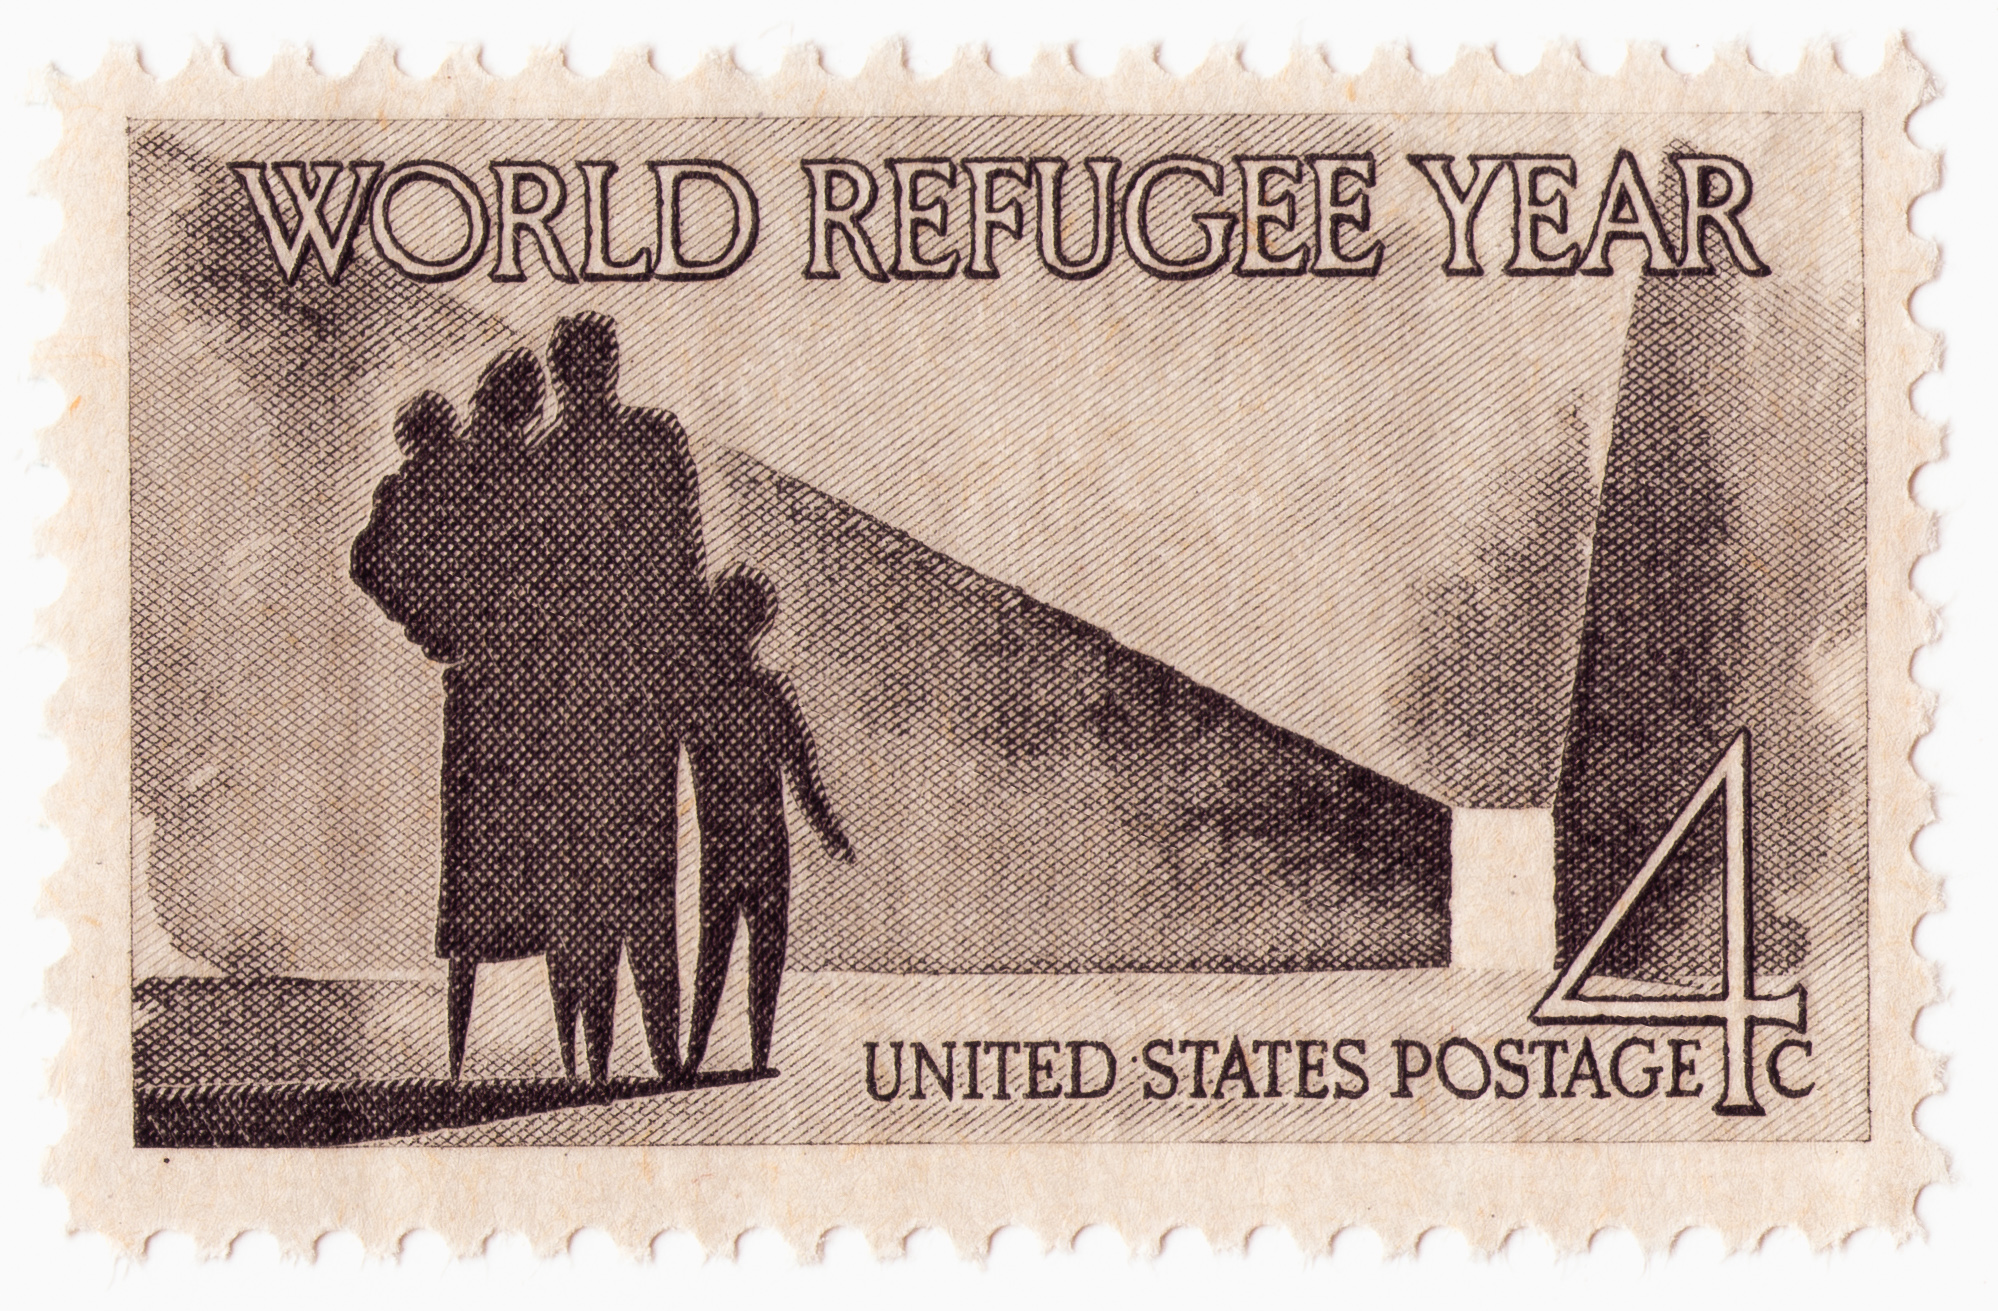 World Refugee Year (1960)